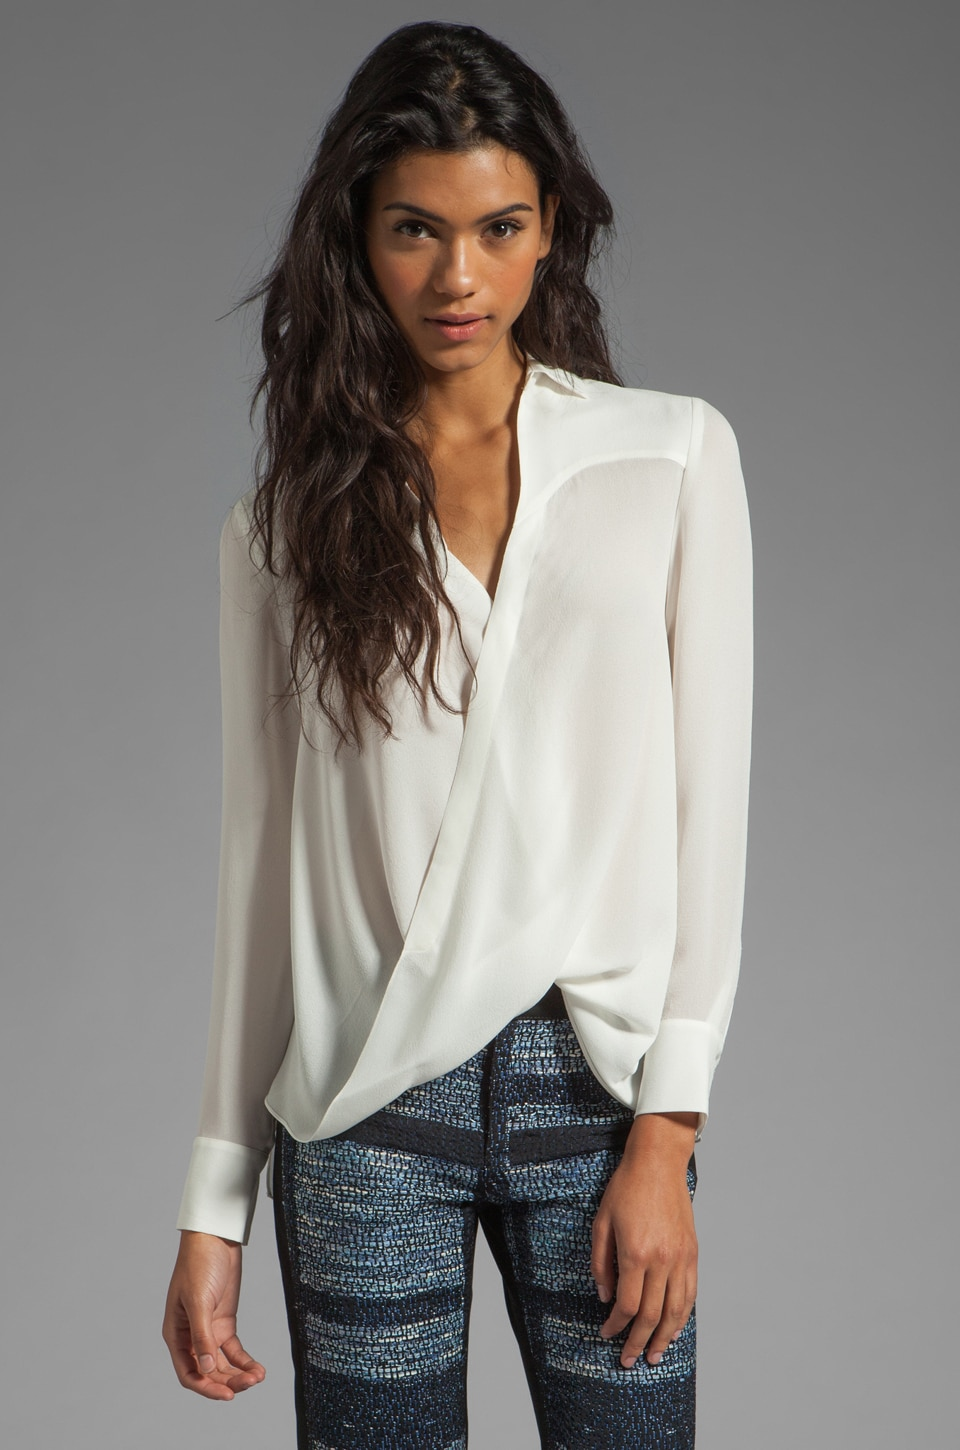 DEREK LAM 10 CROSBY Draped Front Blouse in White